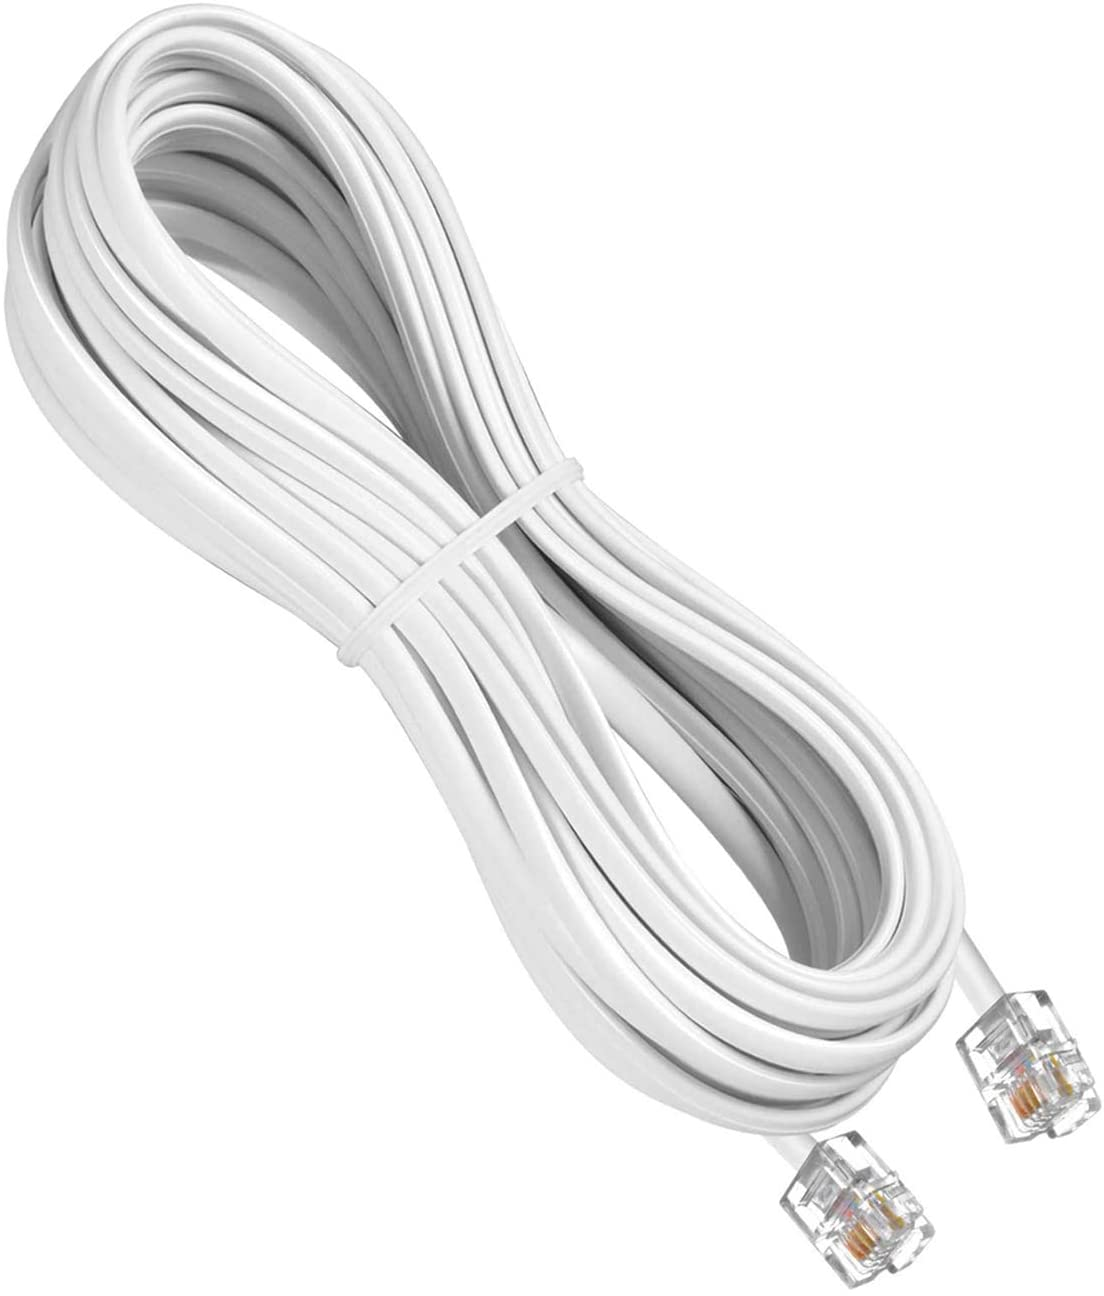 URBEST 5M RJ11 6P4C to RJ45 8P8C White Telephone Connector Plug Cable for Connecting Phone Line to The Internet (5M) …